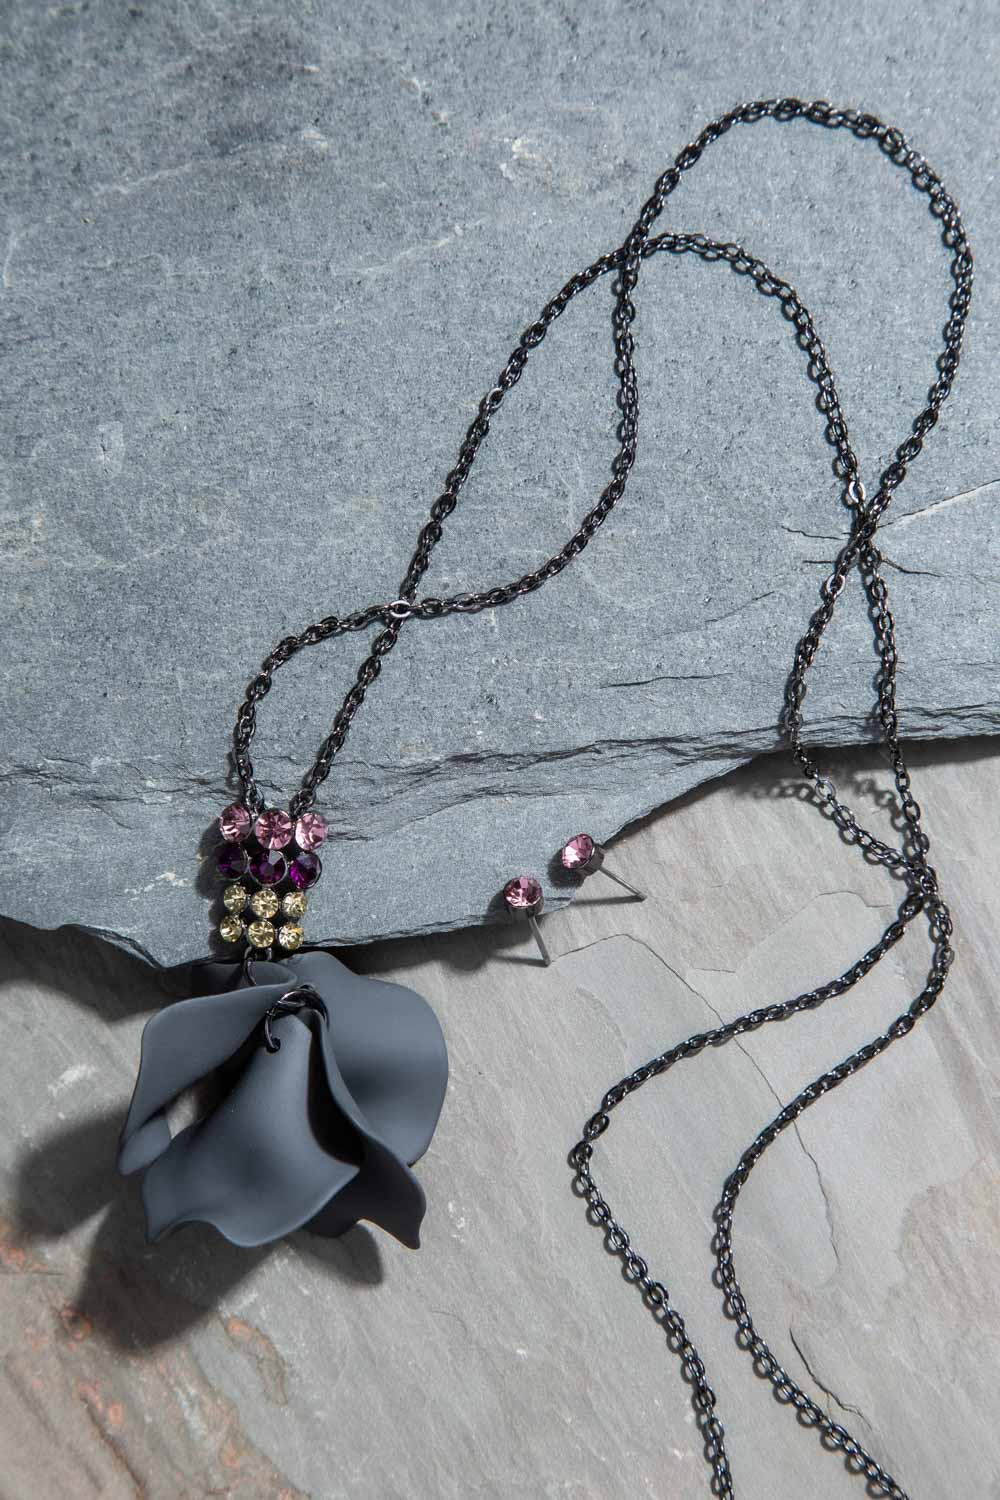 Type 2 Stroke of Midnight Necklace/Earring Set